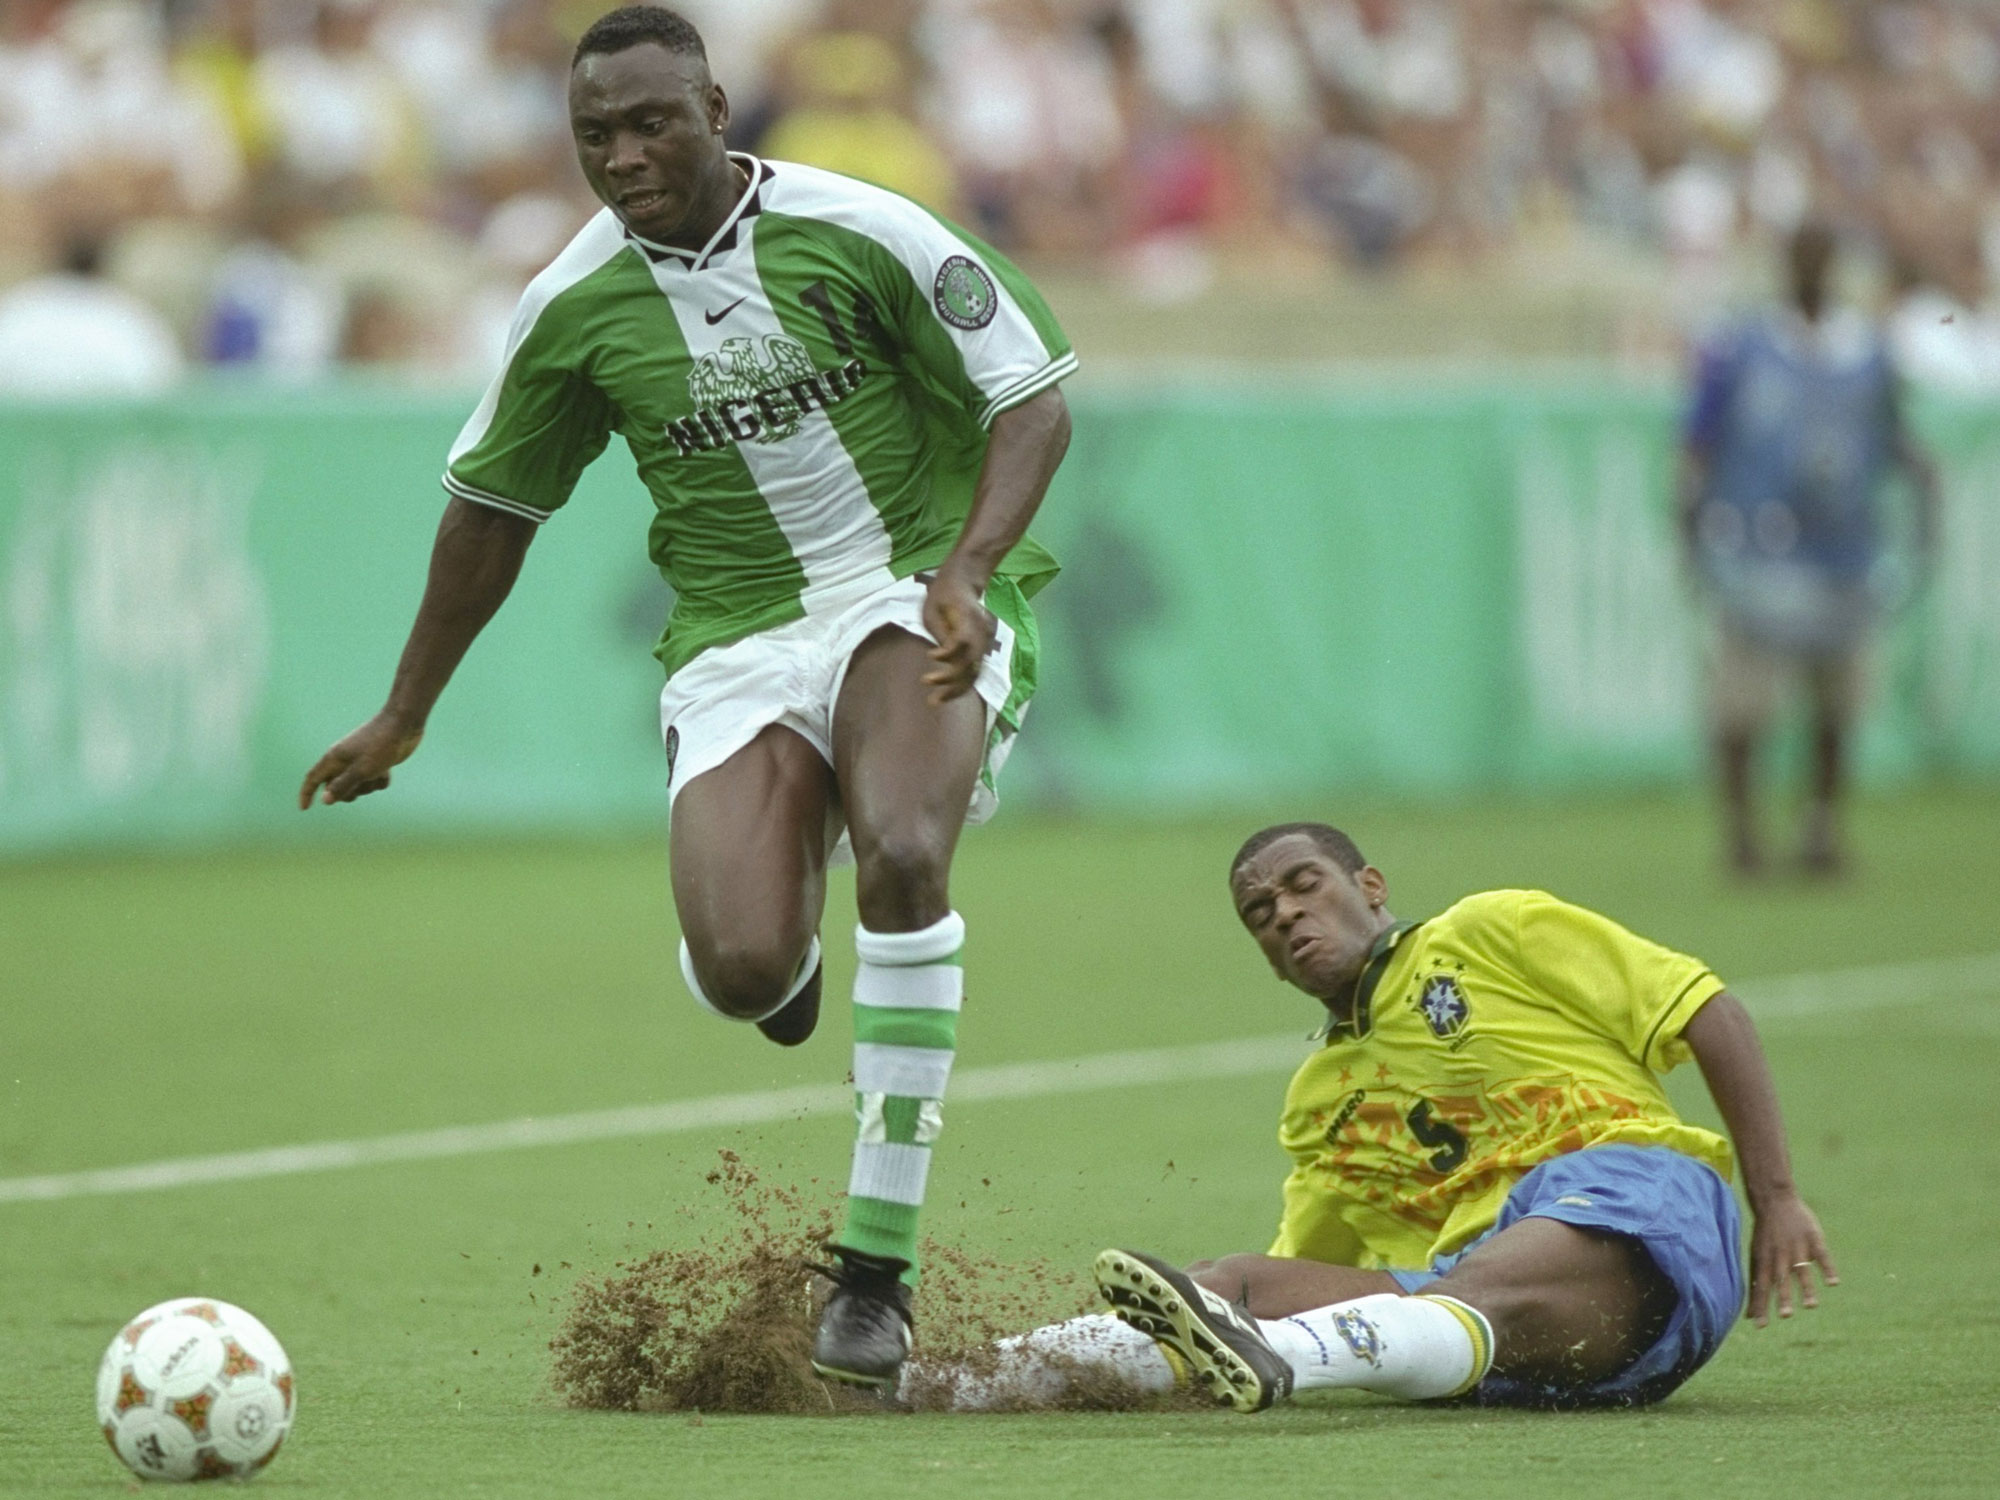 Brazil falls to Nigeria at the 1996 Olympics